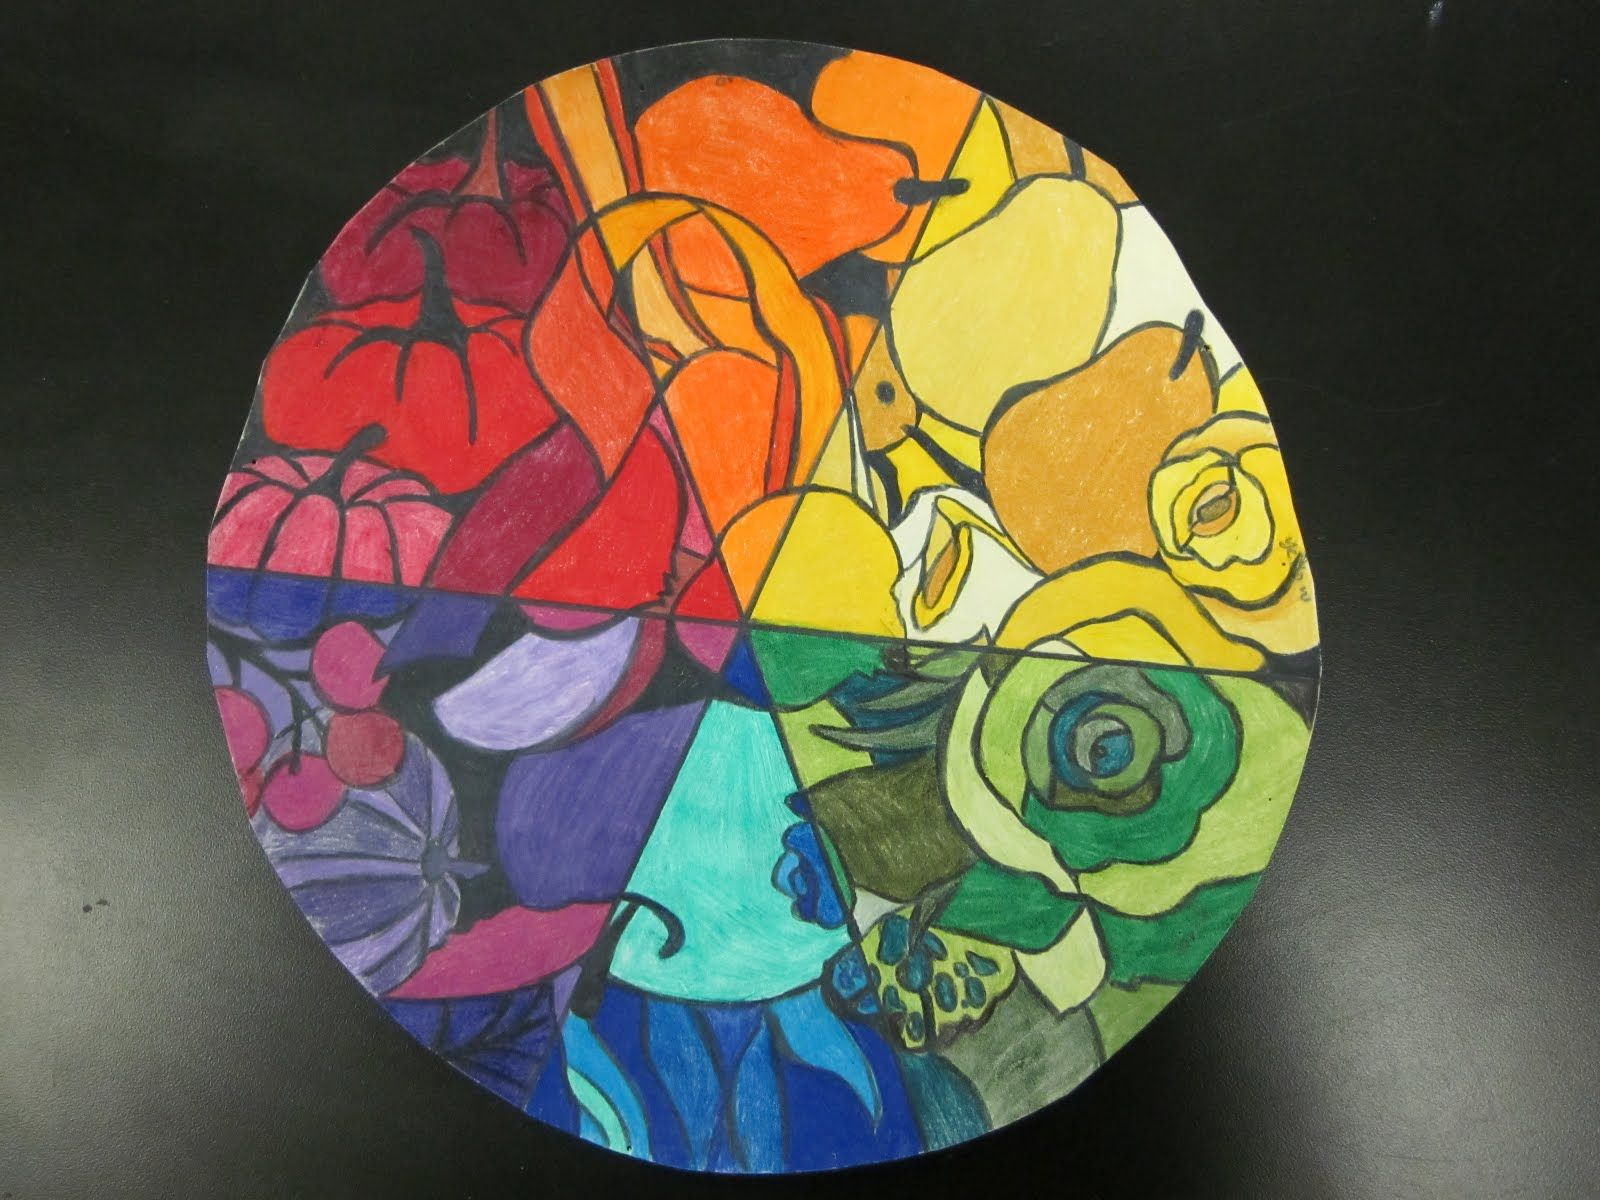 Interesting Twist On A Color Wheel Project Draw An Image On A